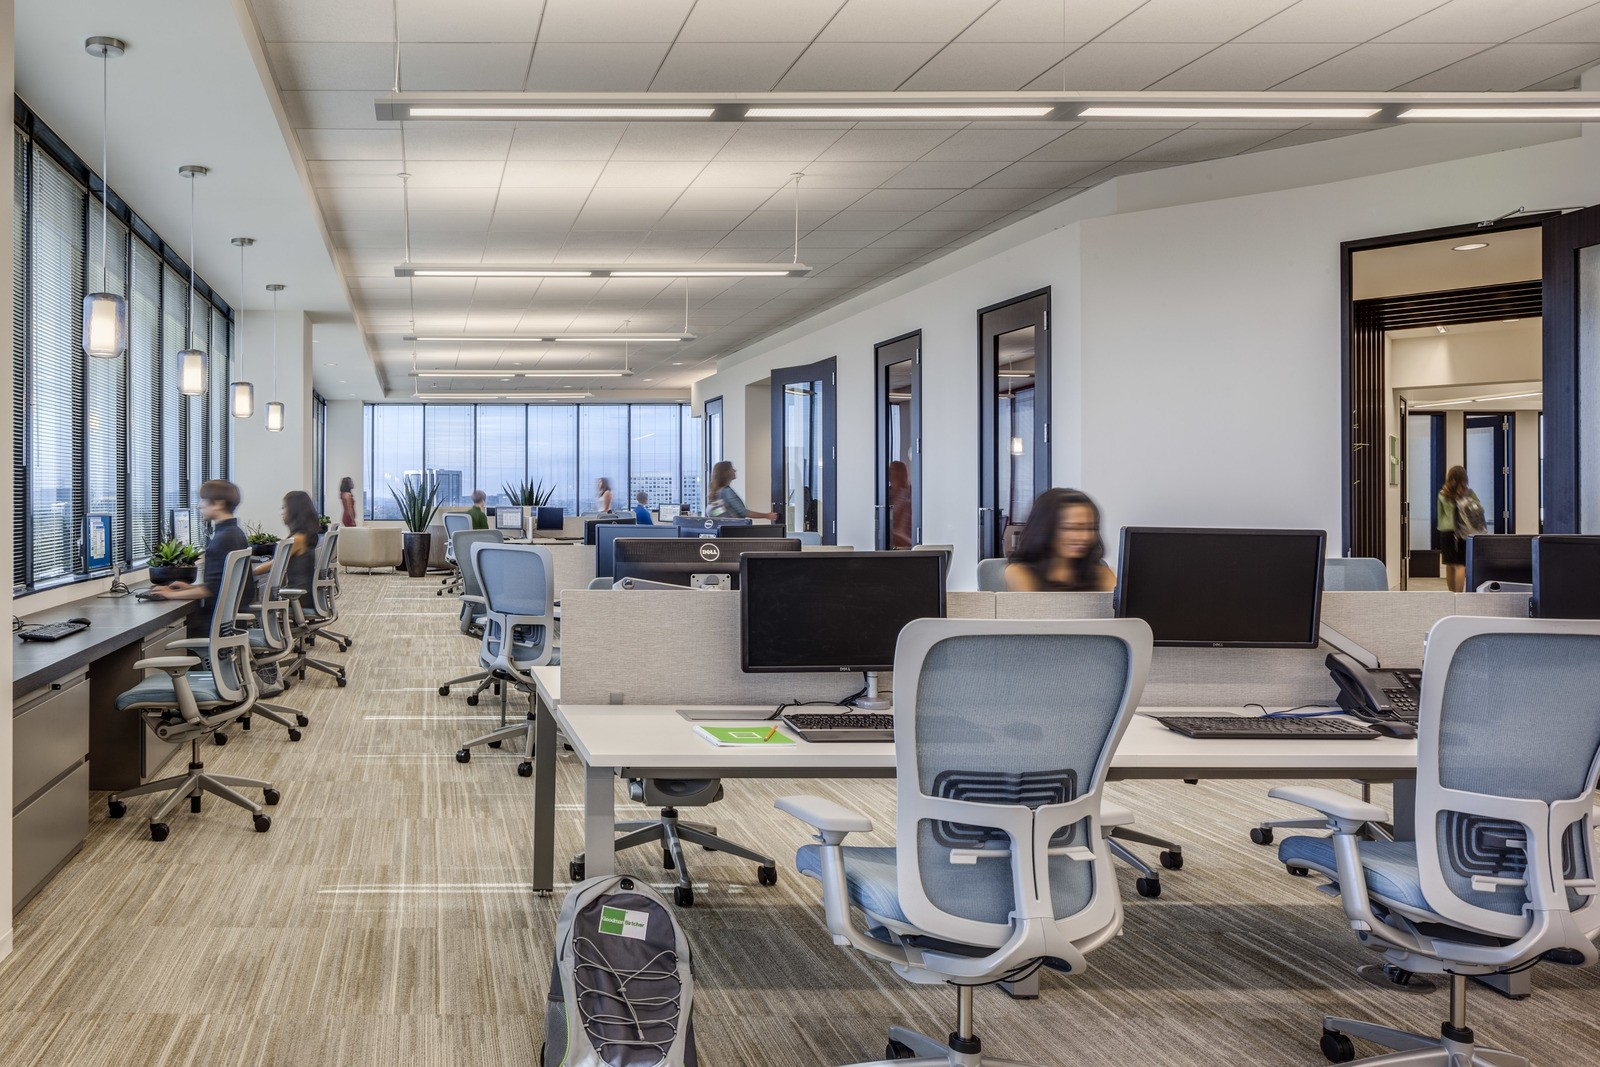 Rethinking Open Offices: Design Strategies for the Future Open Office 2.0